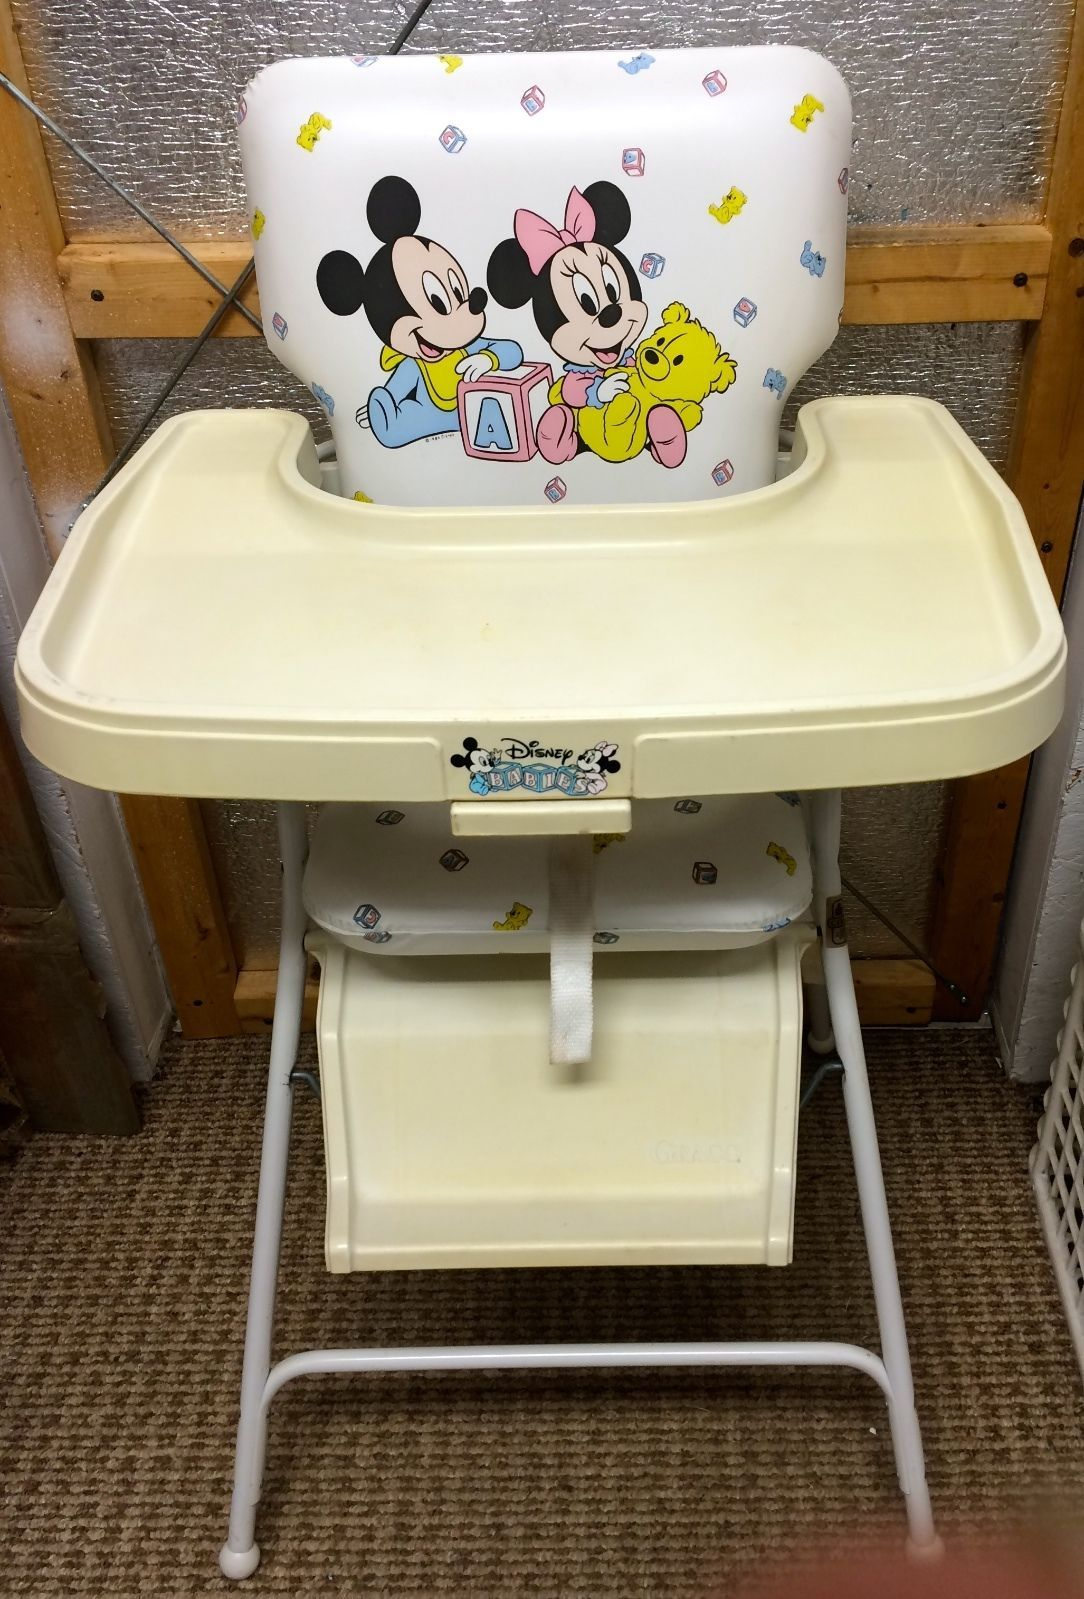 Surprising Details About Rare Vintage Disney Babies Mickey Minnie Mouse Andrewgaddart Wooden Chair Designs For Living Room Andrewgaddartcom